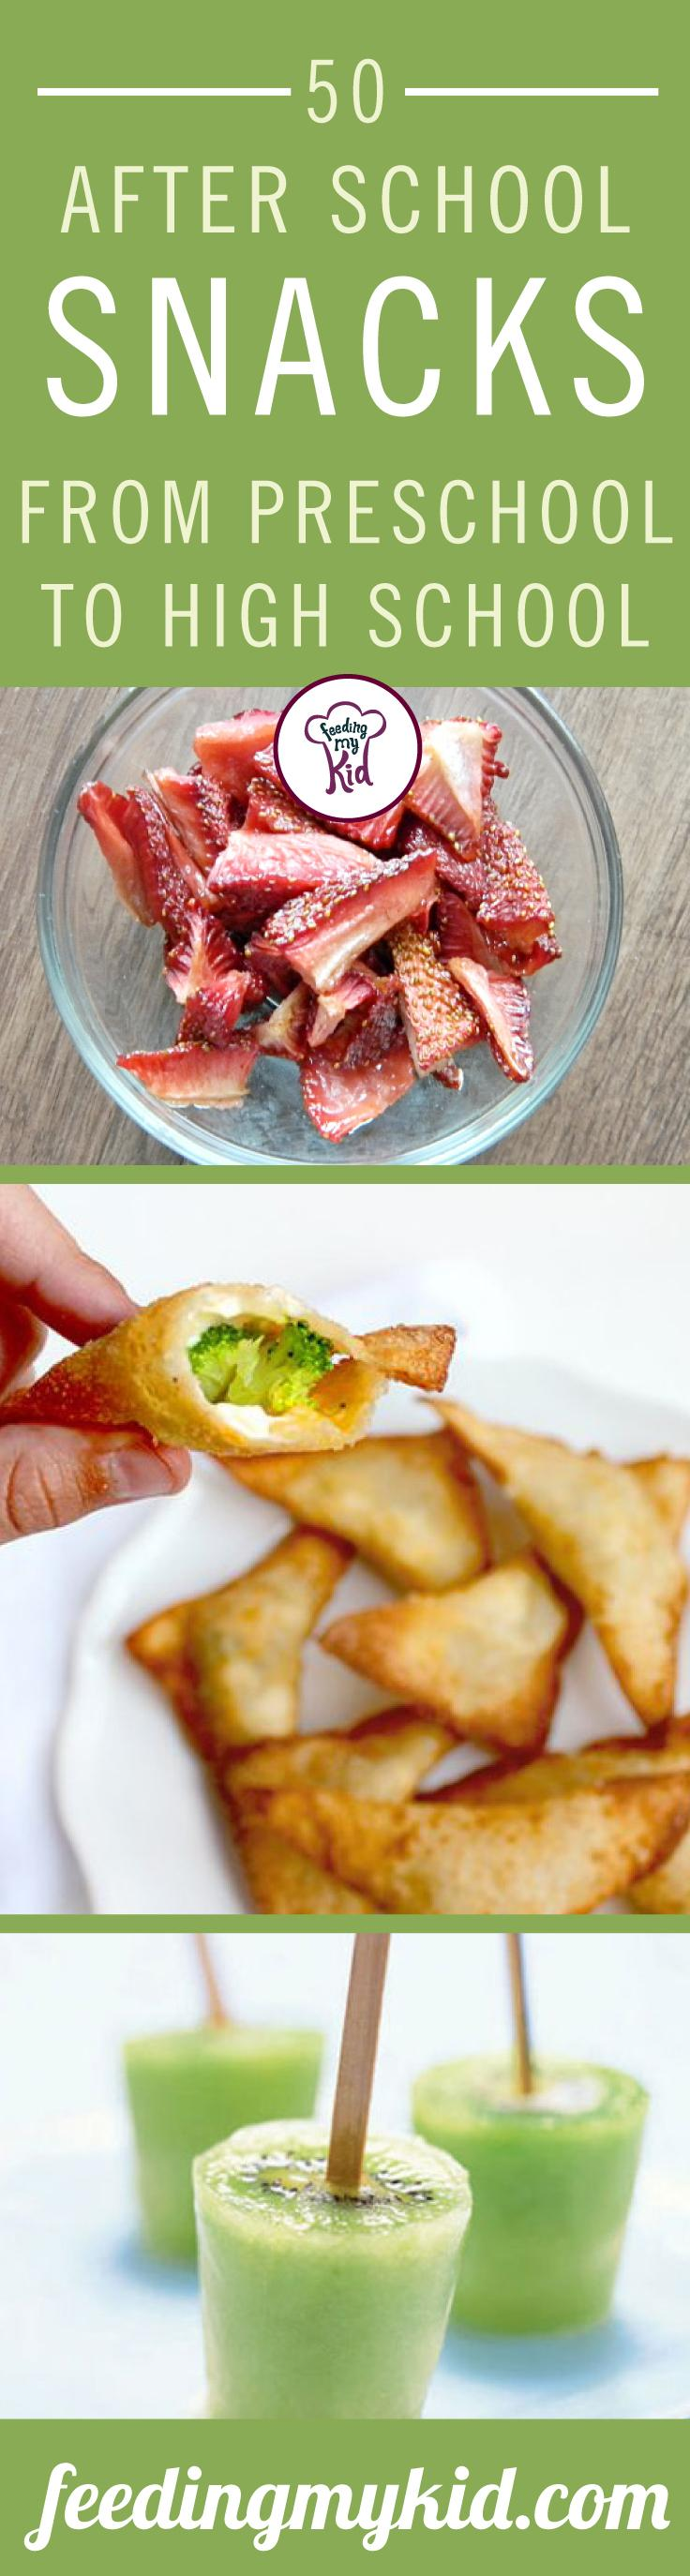 After school snack ideas. This is a must share! Try these after school snacks! They are a great way to ensure that your kids are eating right. From kiwi ice pops to banana split bites! This is a must share! Feeding My Kid is a great website for healthy tips, recipes, and ways to eat clean. #fmk #recipes #snacks #afterschoolsnacks